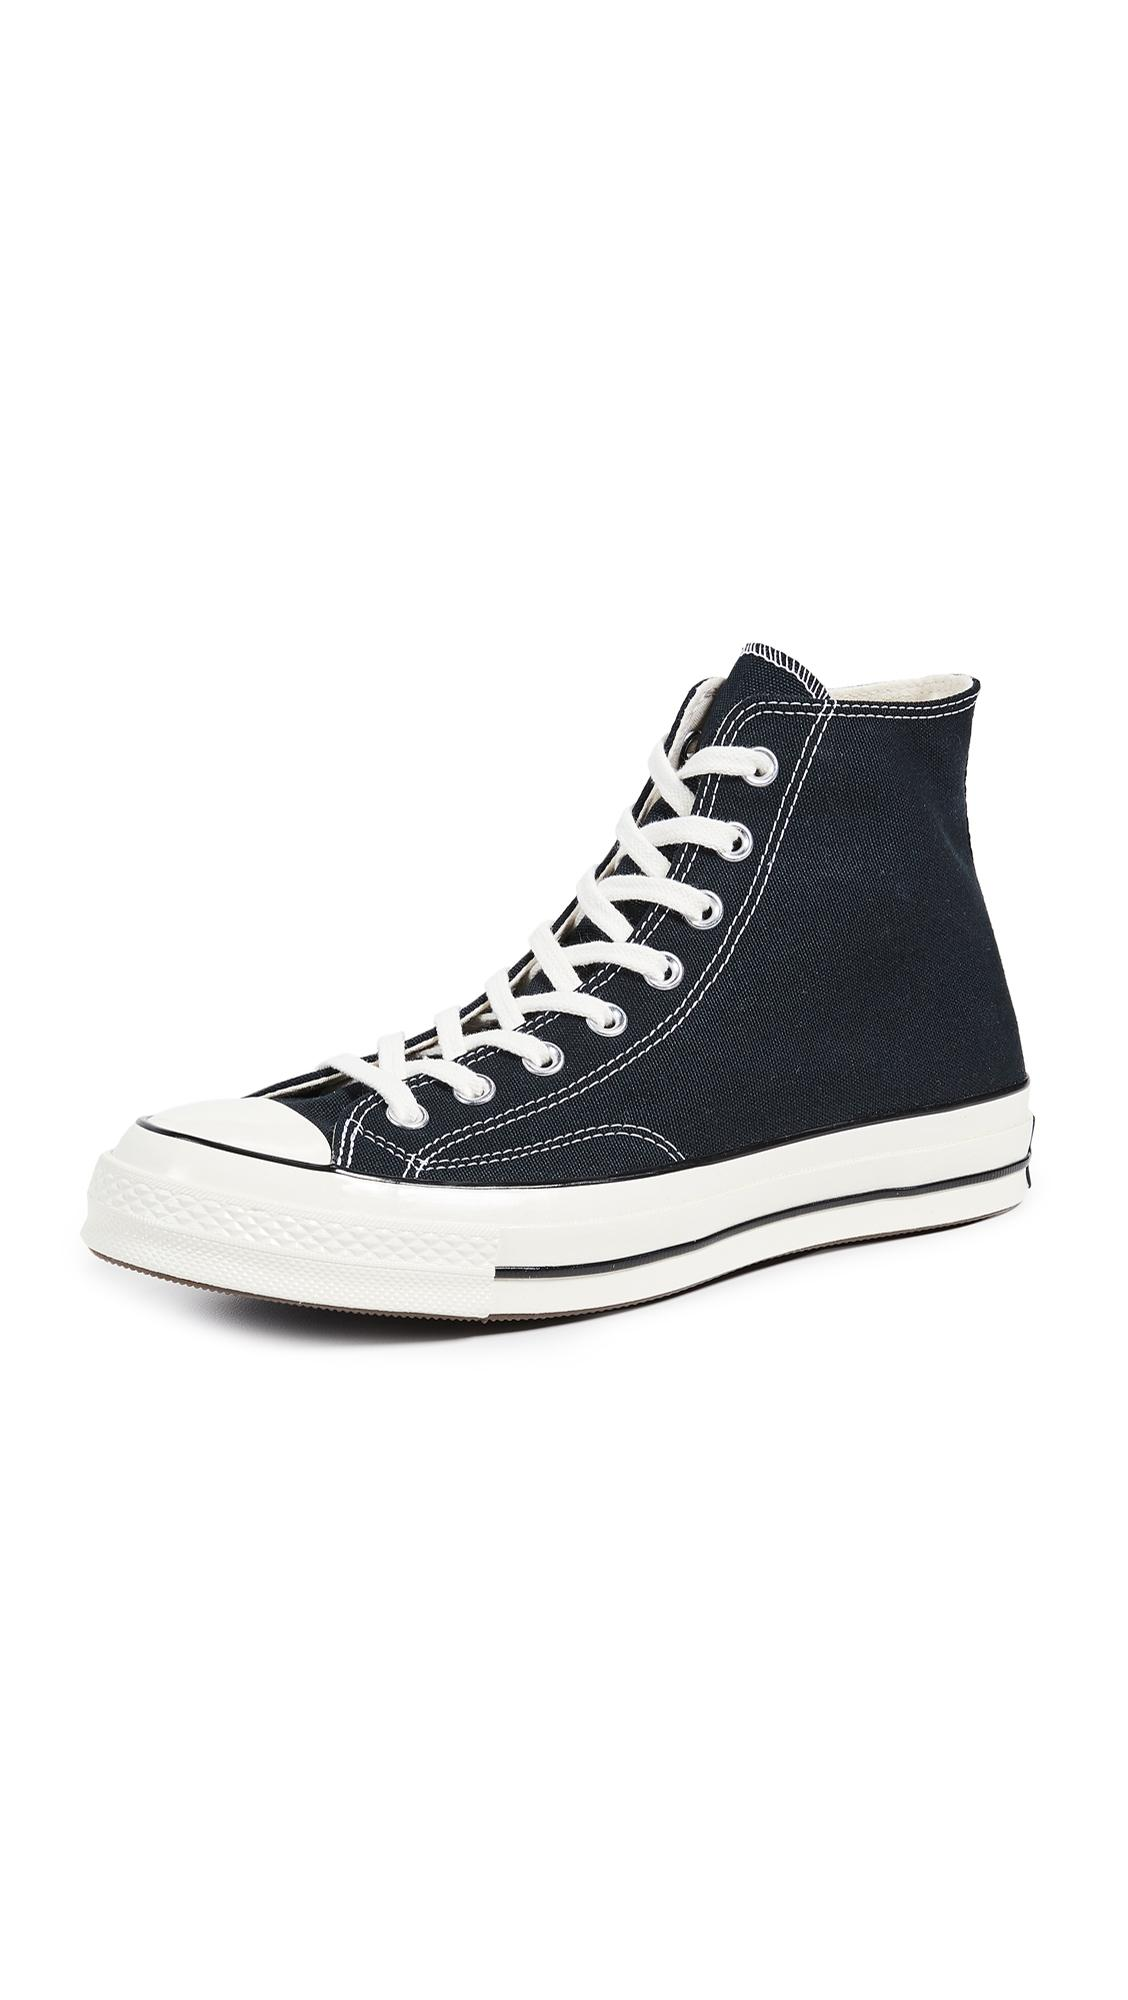 31451181729 Converse Chuck Taylor All Star '70S High Top Sneakers In Black ...